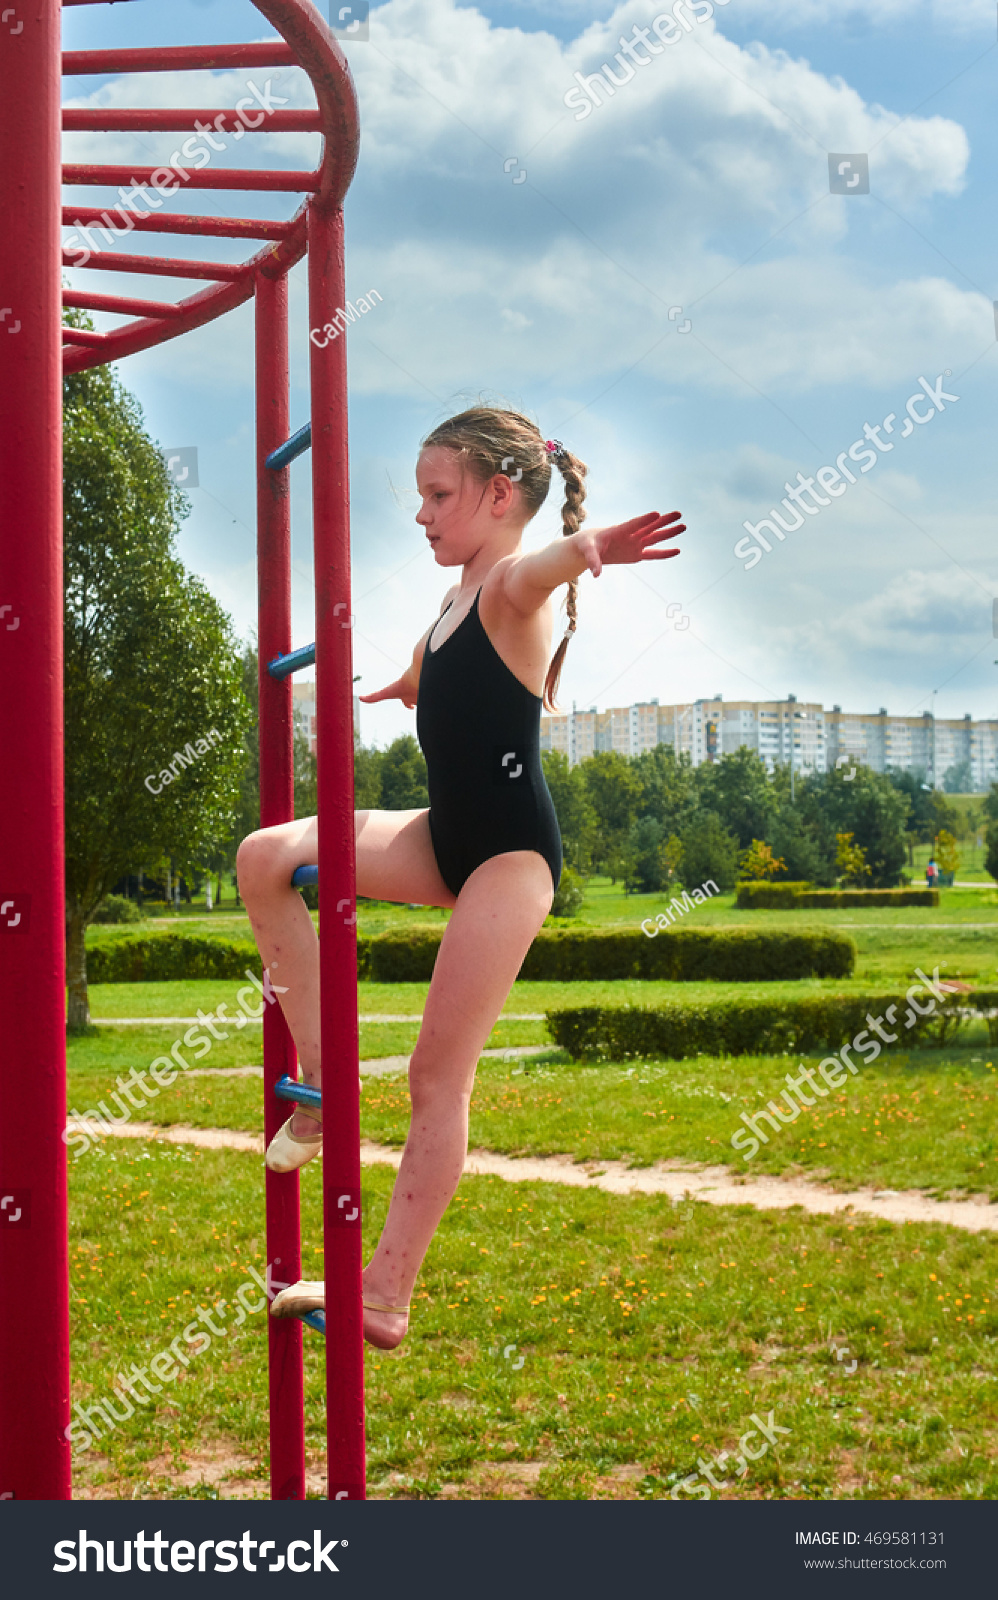 preteen stretch Young beautiful preteen girl doing gymnastic stretch yoga outdoors in park